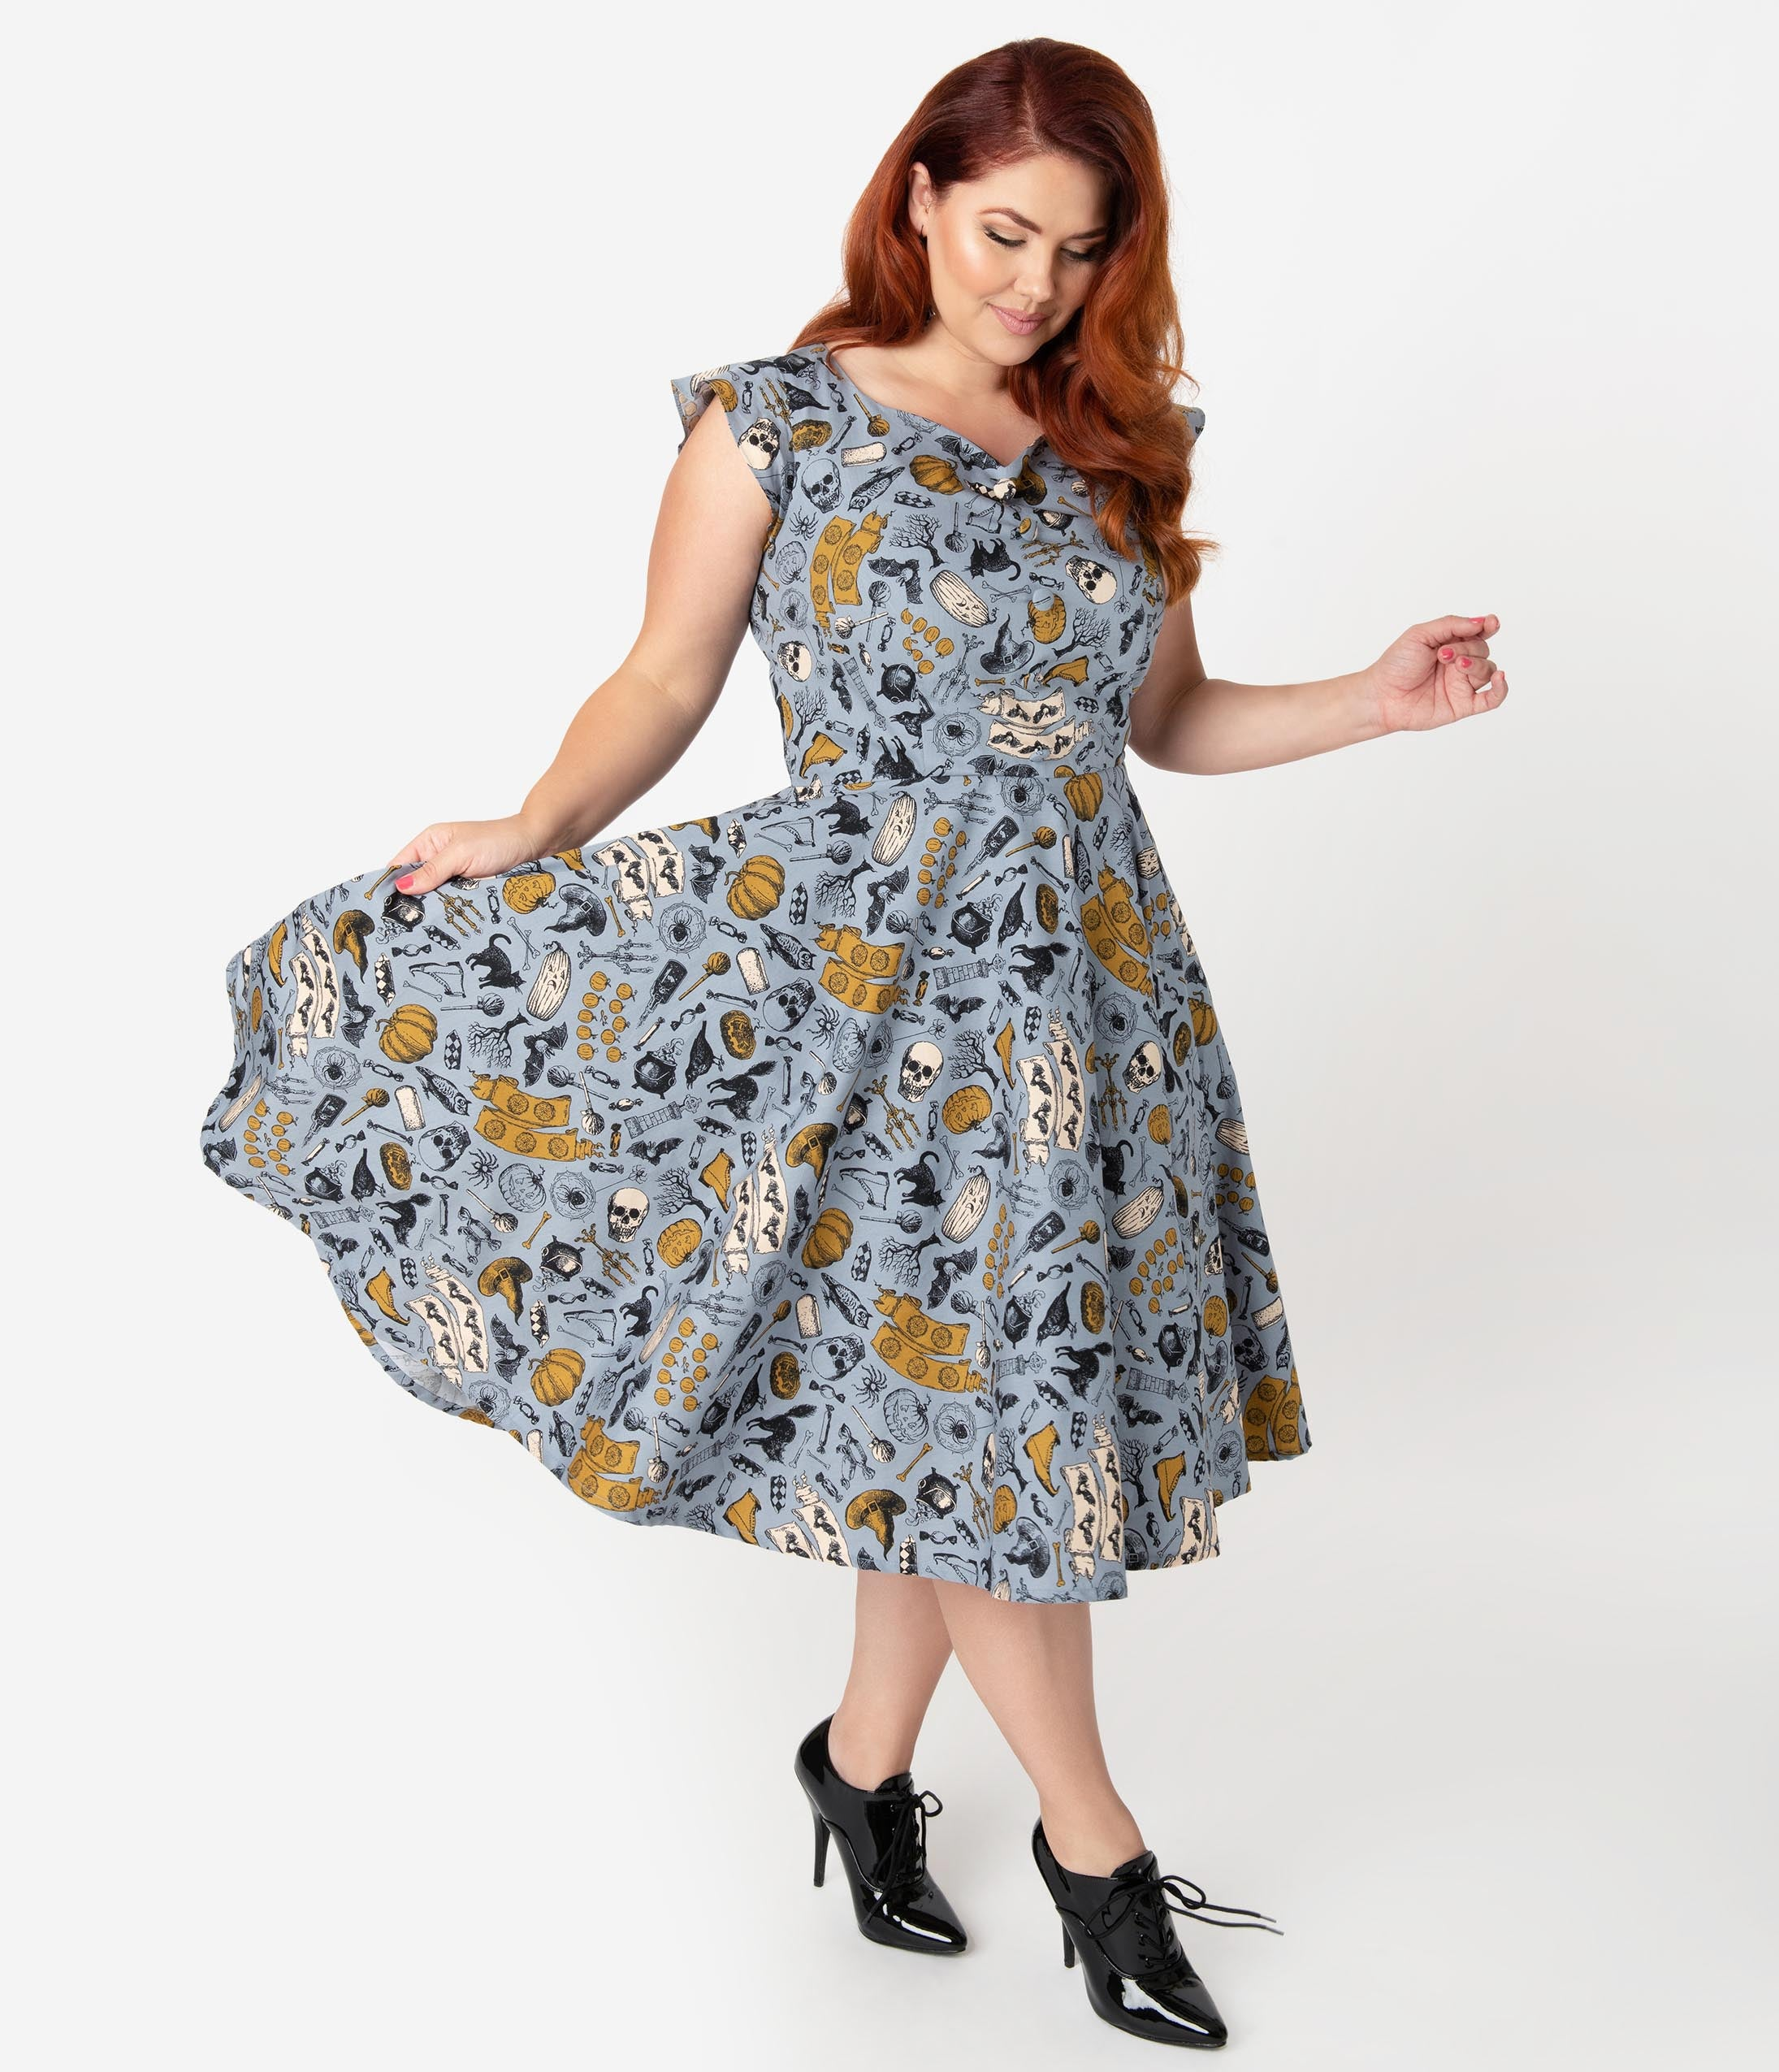 Plus-Size Vintage Dresses - Swing & Pencil Dresses – Unique Vintage